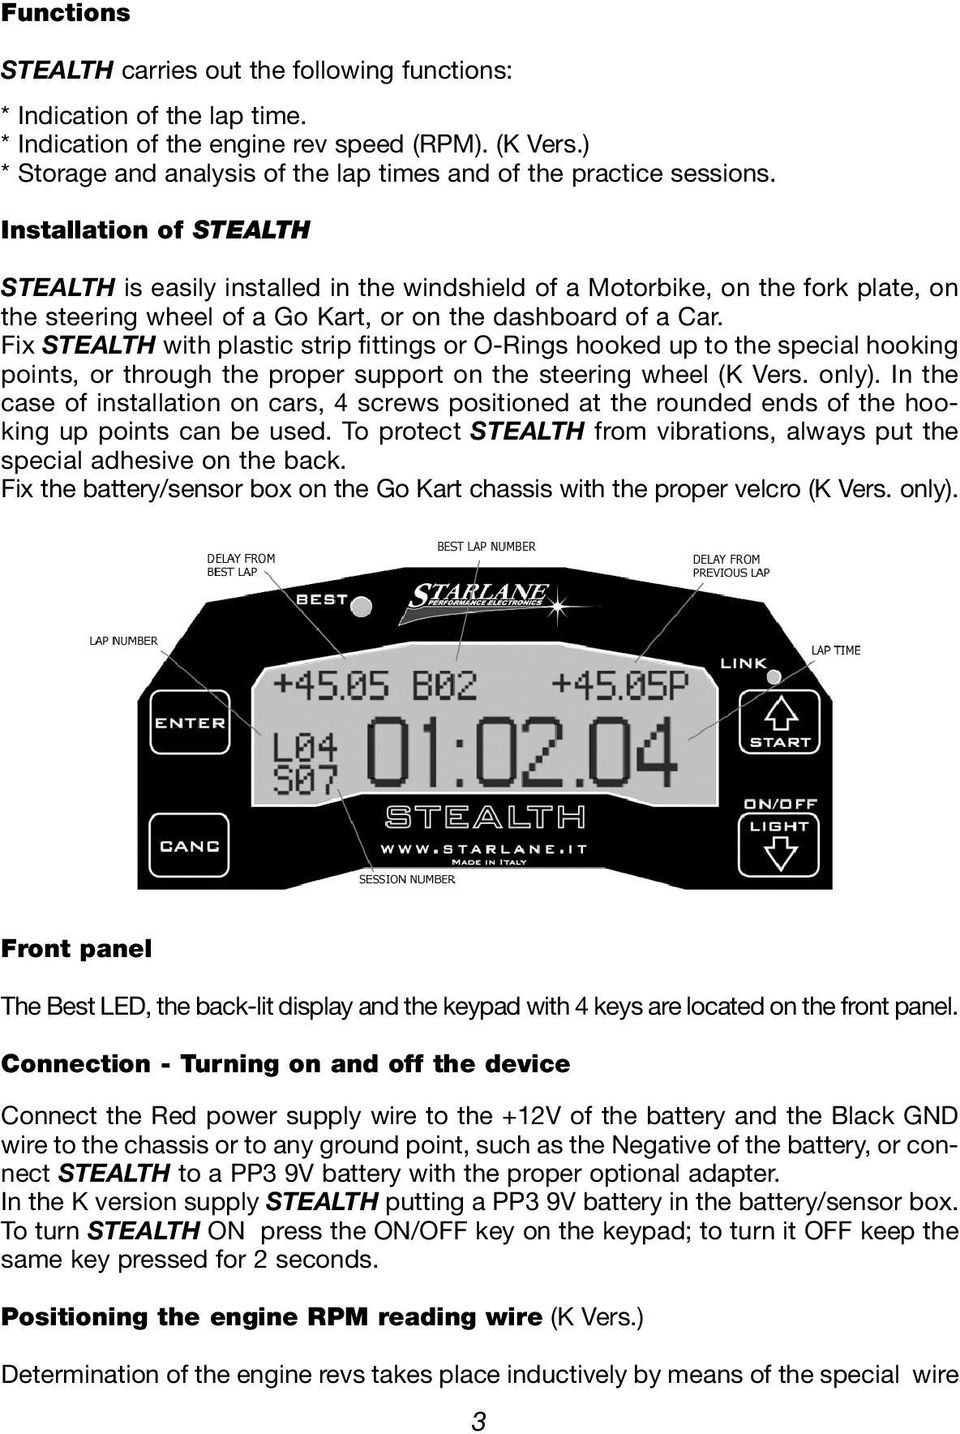 Installation of STEALTH STEALTH is easily installed in the windshield of a Motorbike, on the fork plate, on the steering wheel of a Go Kart, or on the dashboard of a Car.